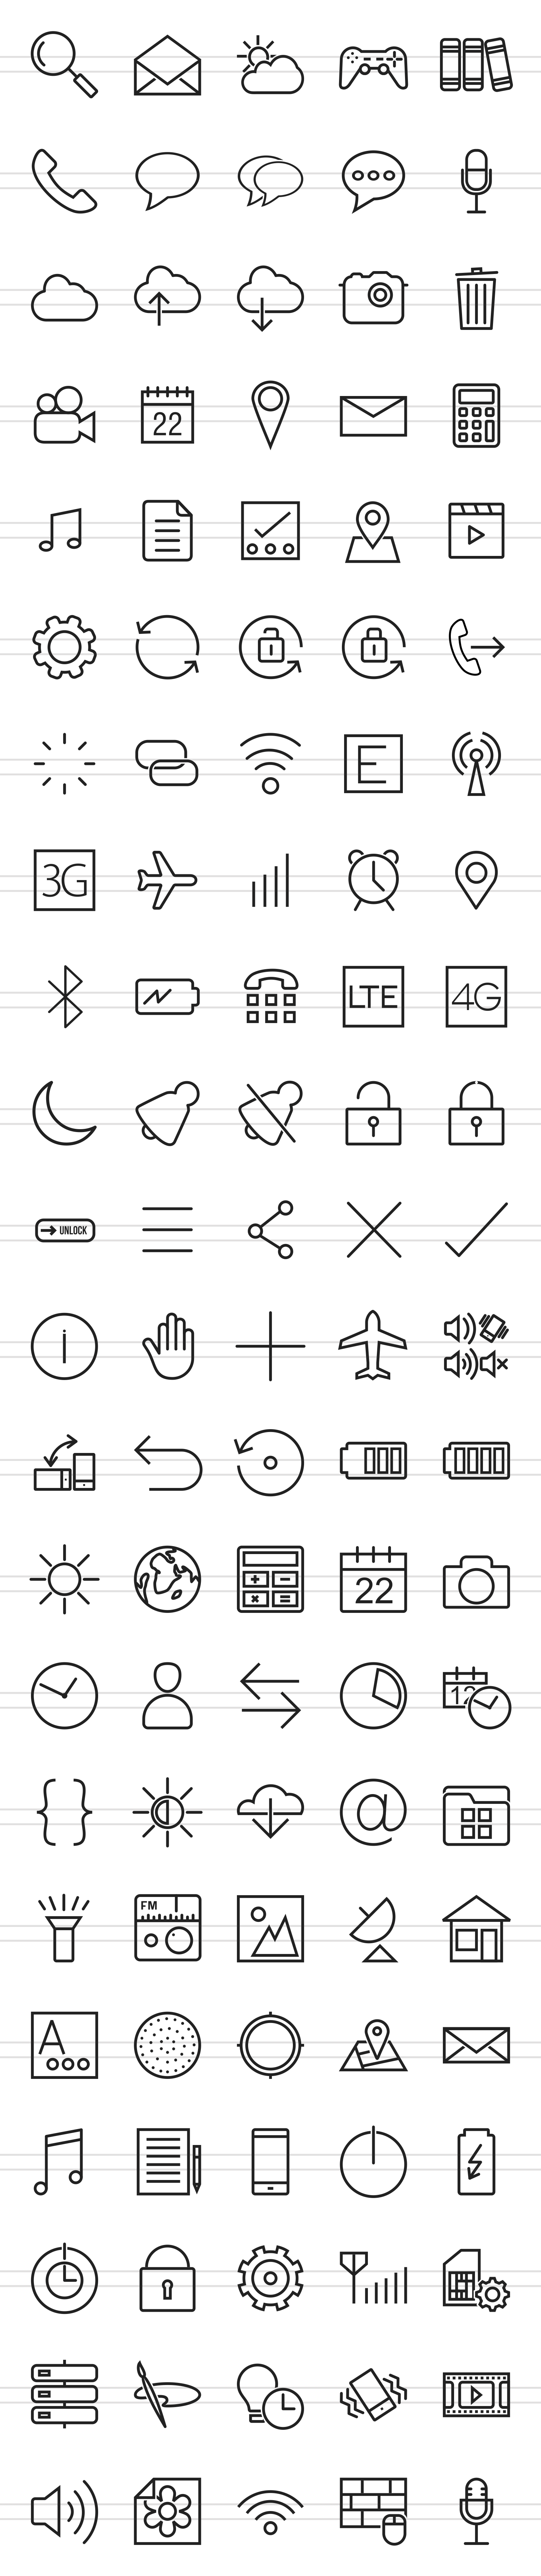 110 Mobile Apps Line Icons example image 2